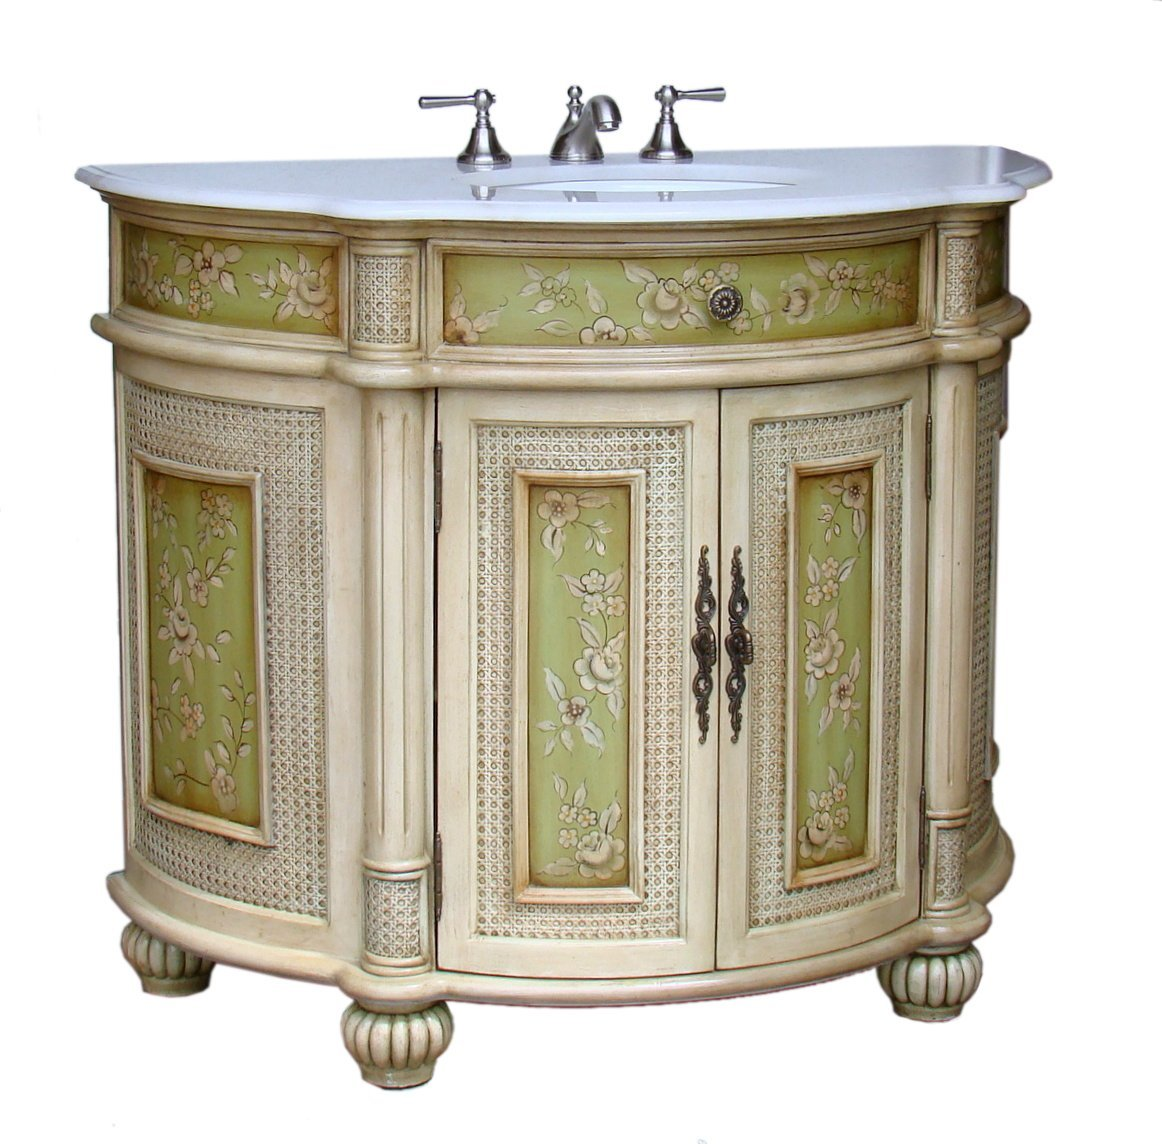 Adelina 41 Inch Antique Hand Painted Bathroom Vanity Fully Assembled White Marble Counter Top